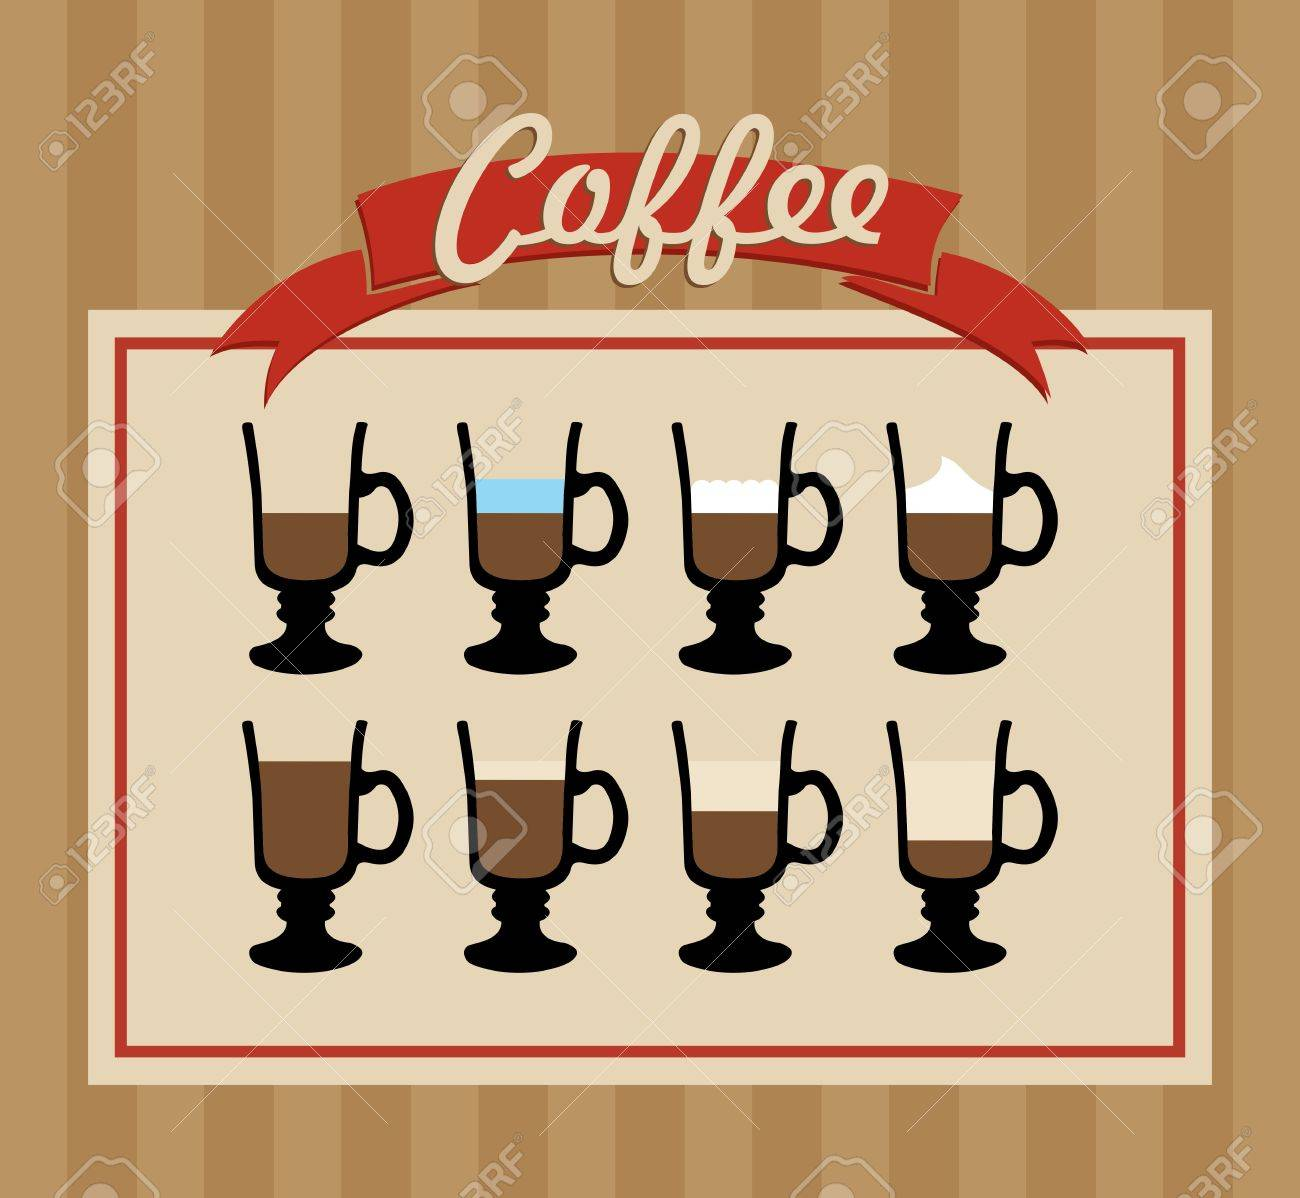 Vintage coffee label variety cups illustration. Vector file layered for easy manipulation and custom coloring. Stock Vector - 21439221